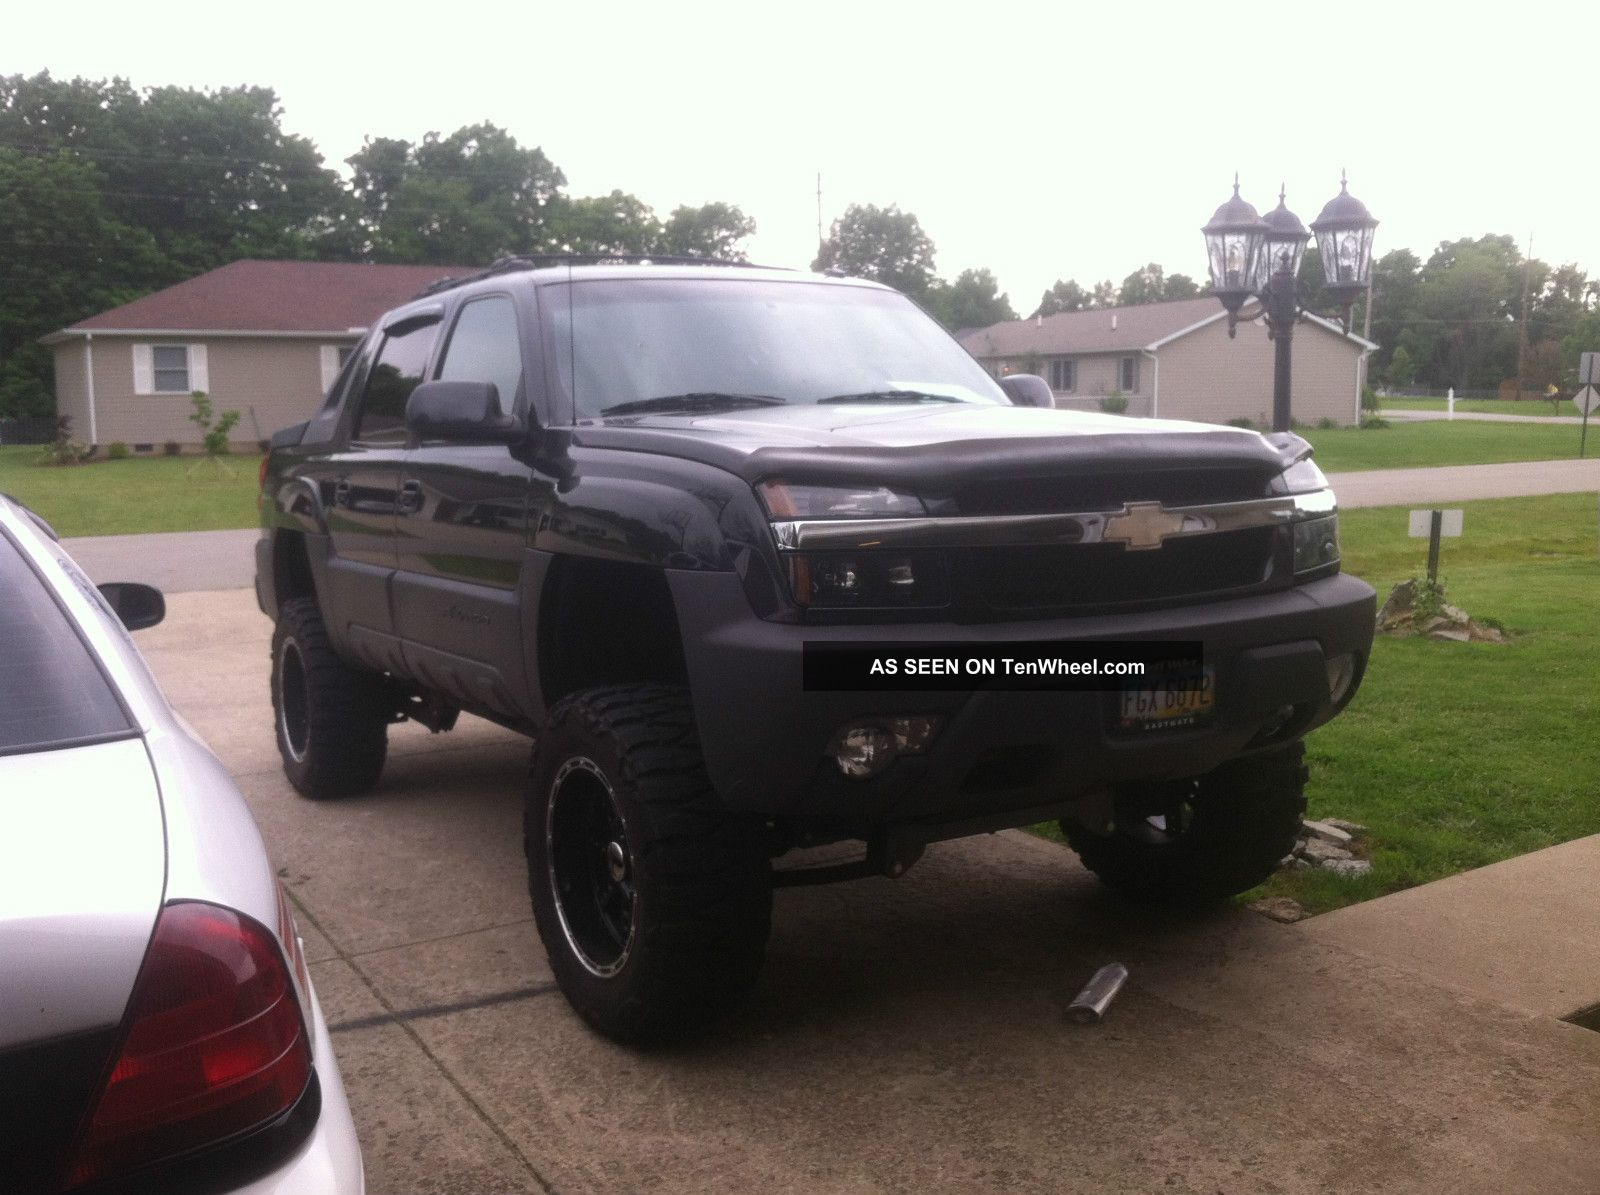 2003 chevrolet avalanche lifted 1500 z71 crew cab pickup 4 door 5 3l. Black Bedroom Furniture Sets. Home Design Ideas